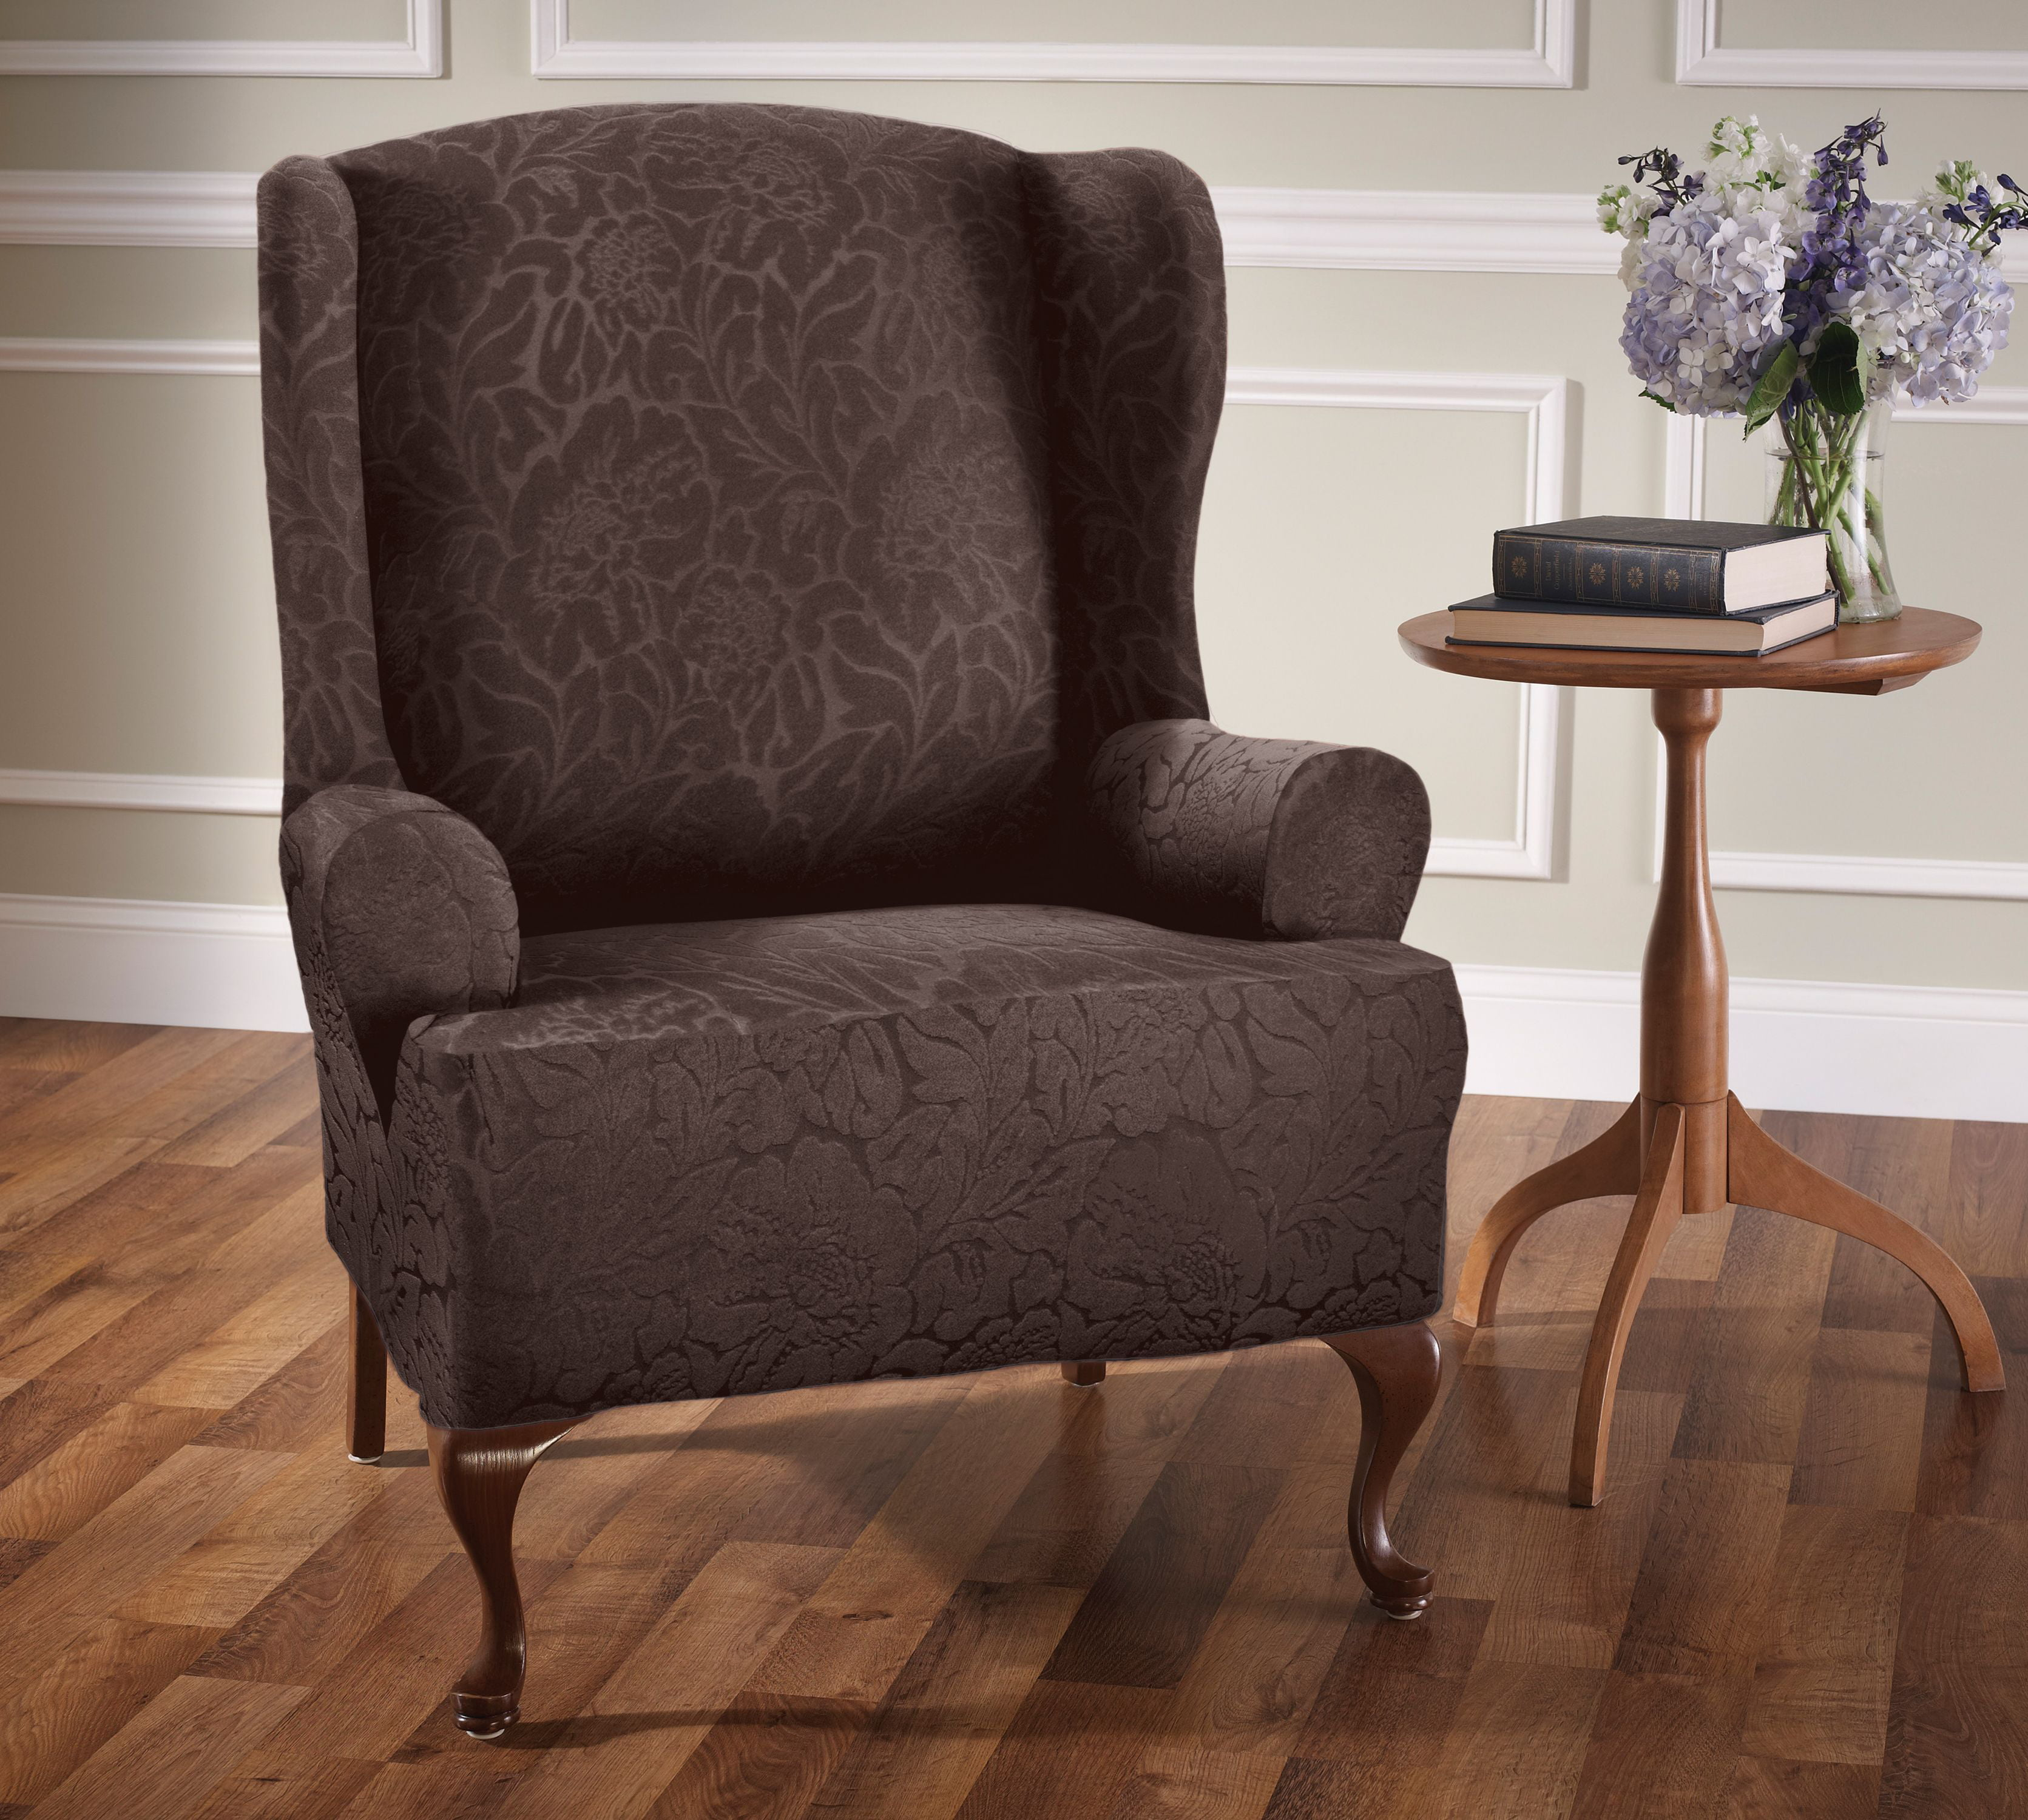 floral slipcovers for wingback chairs | STRETCH FLORAL WING CHAIR SLIPCOVER - Walmart.com